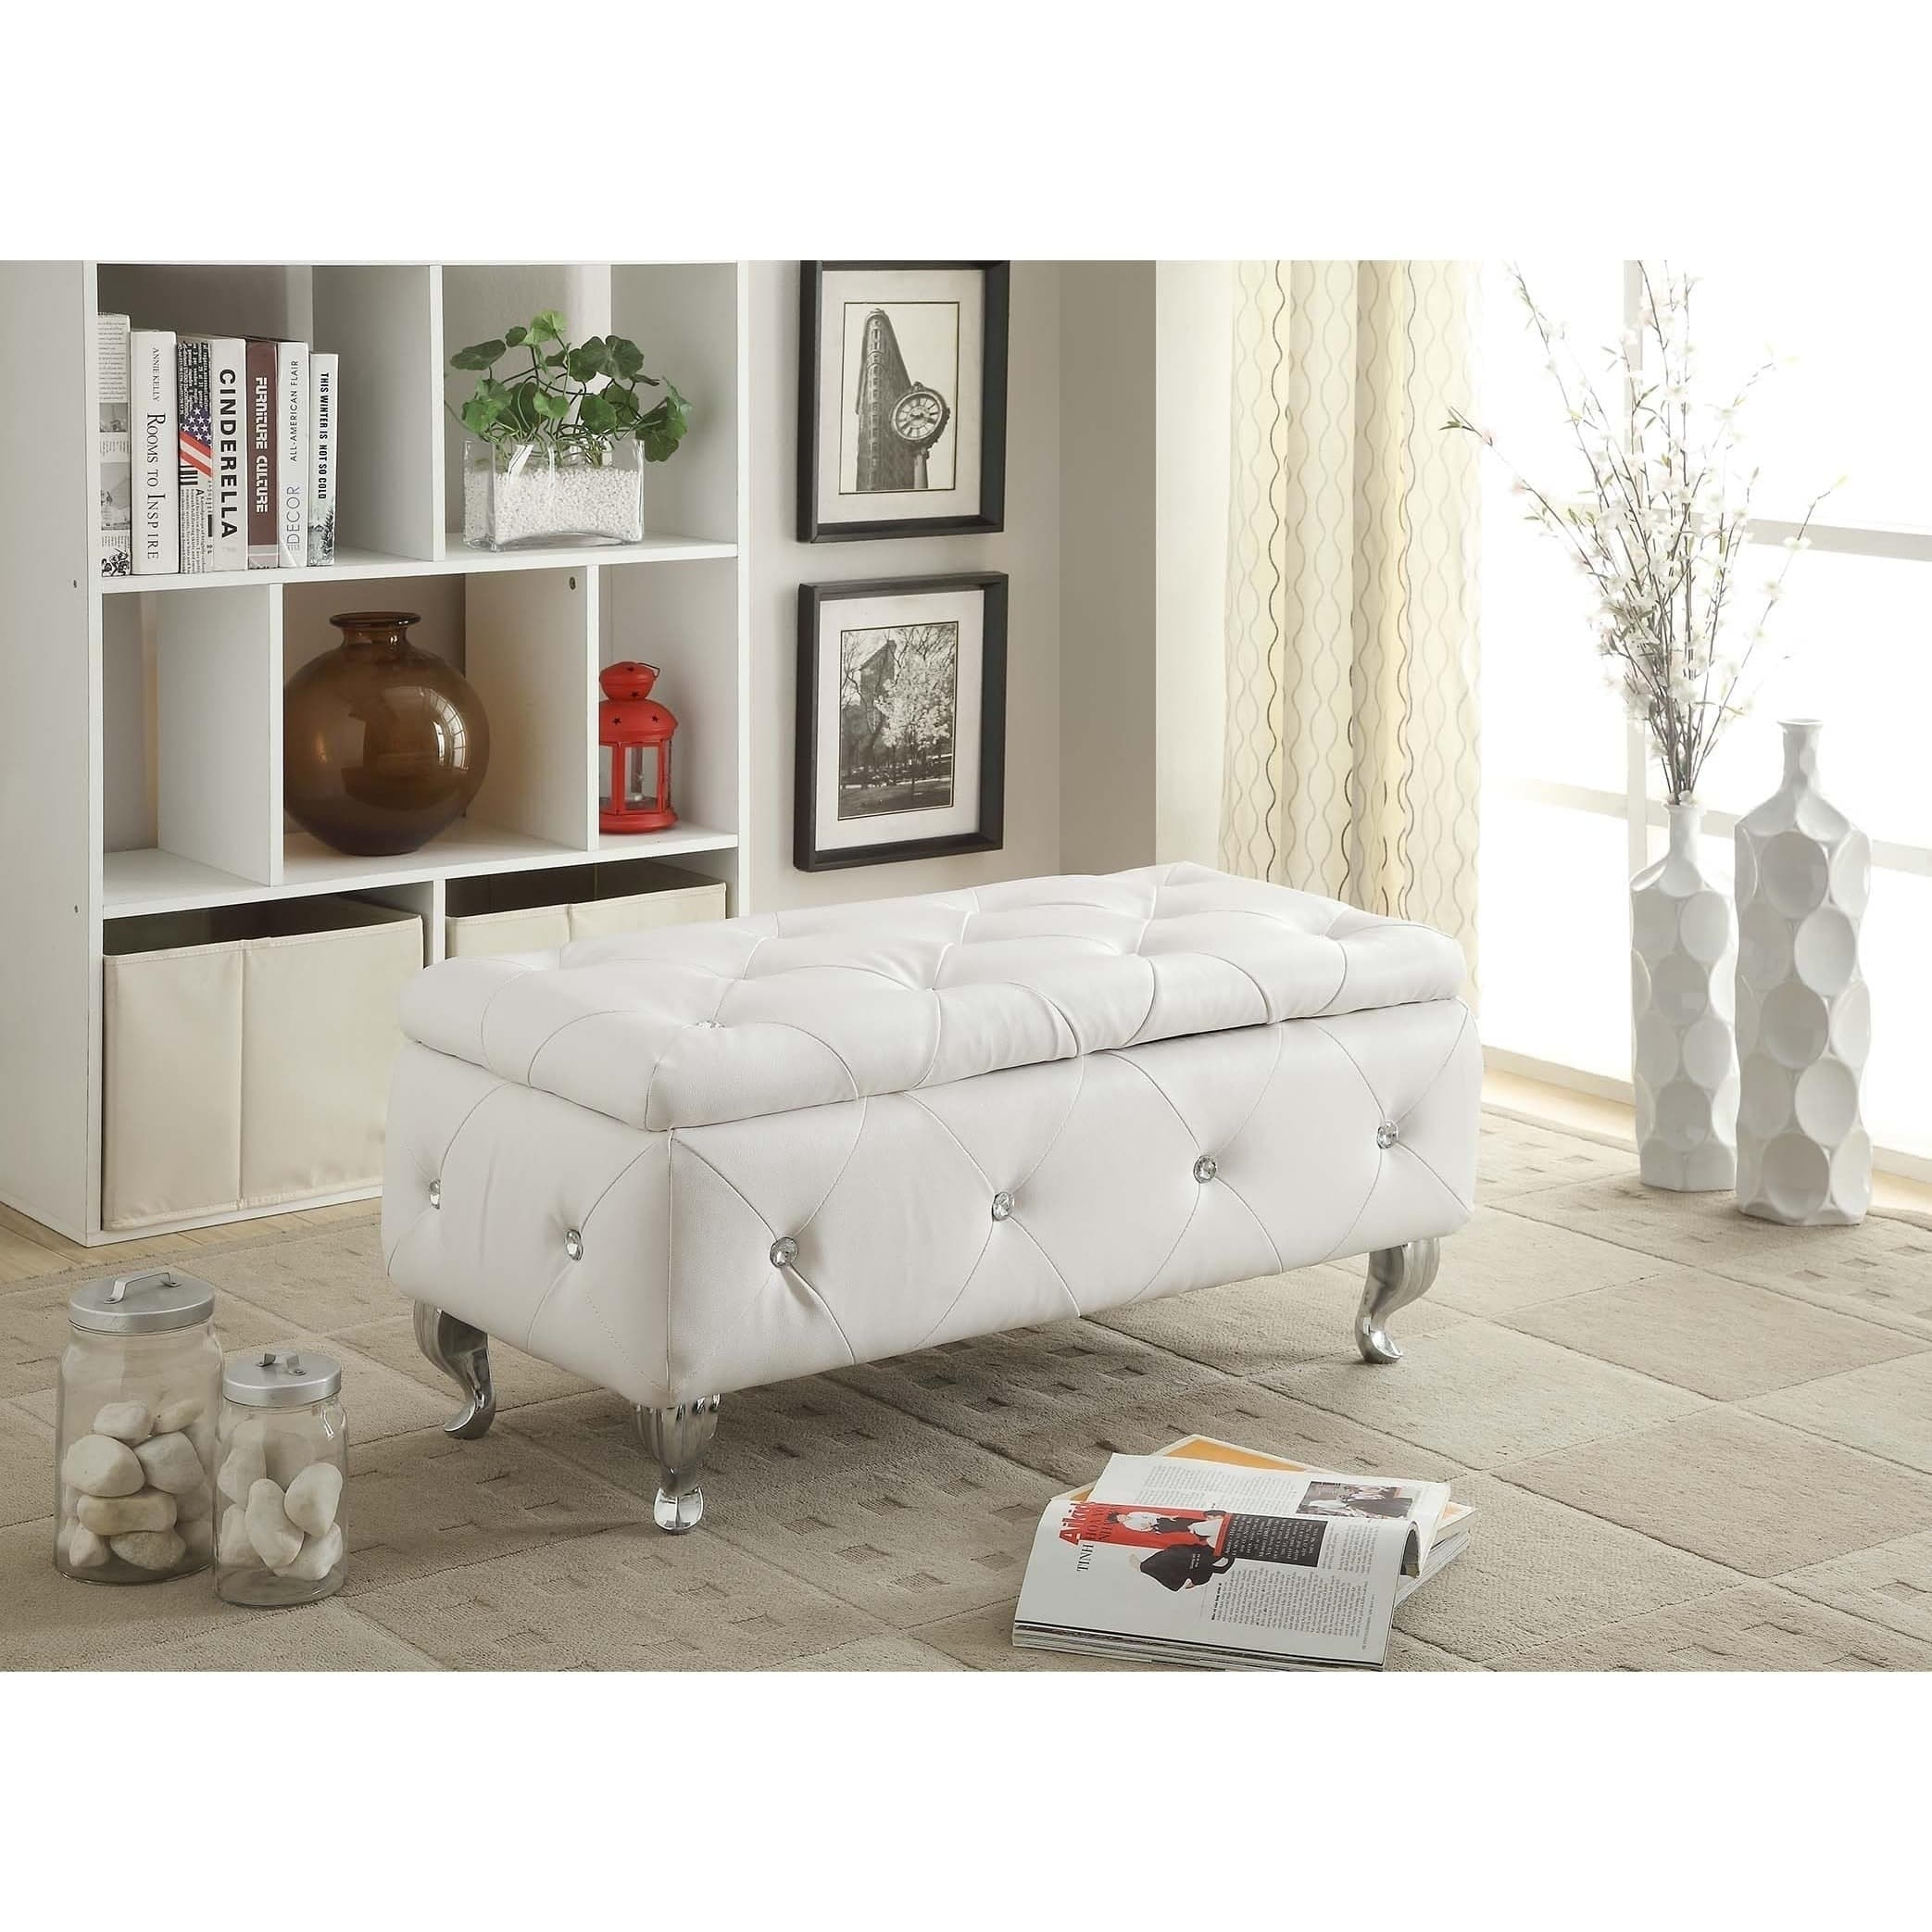 Shop Glam Leather Upholstered Tufted Storage Bench - On Sale - Free ...